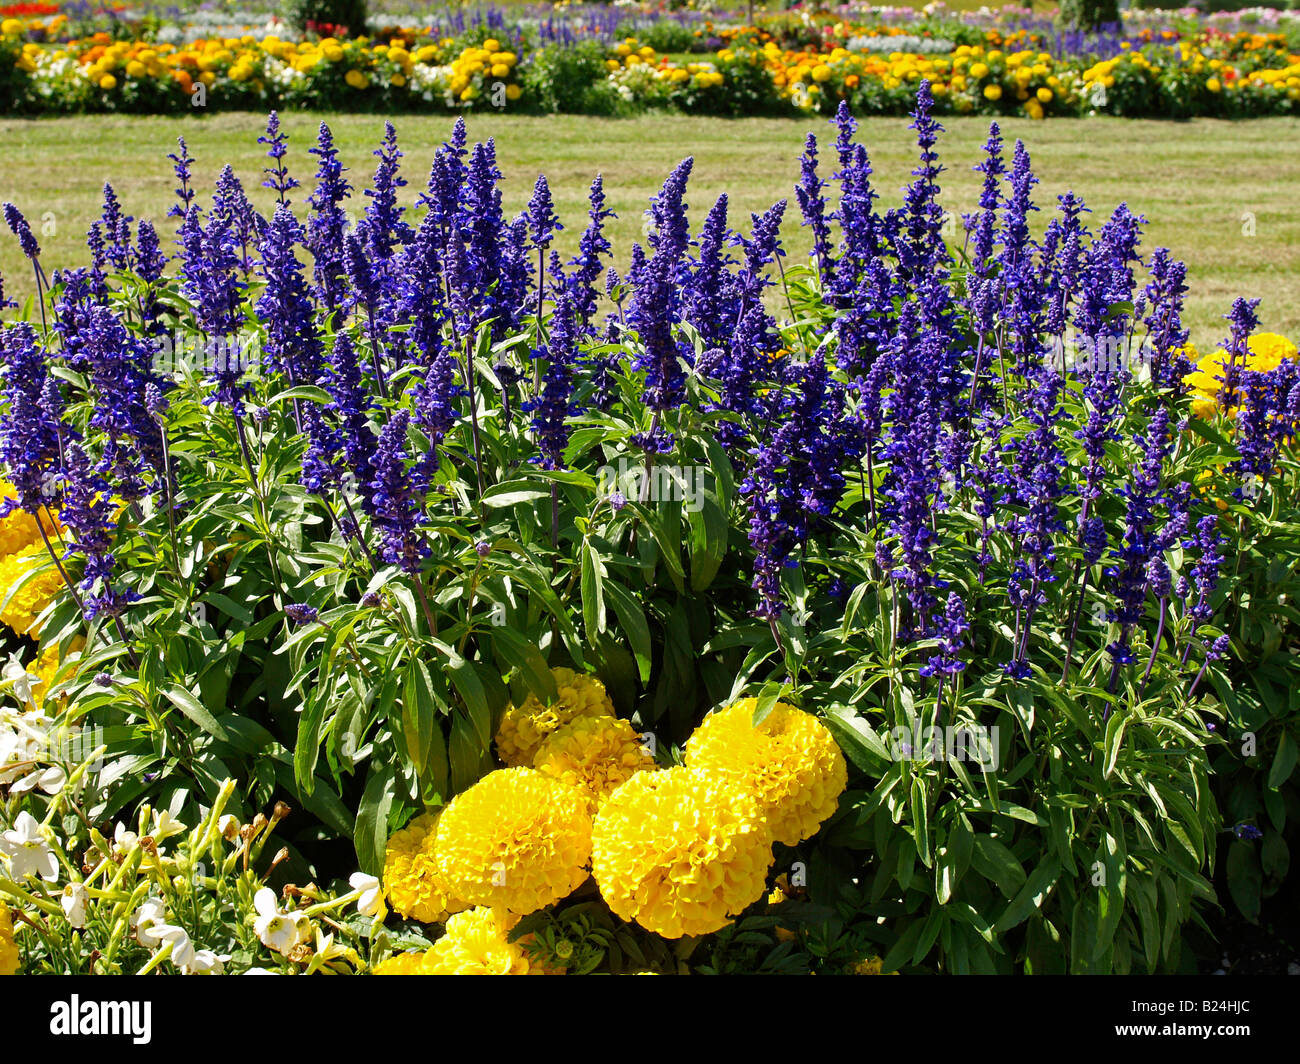 plant flower salvia farinacea - Stock Image